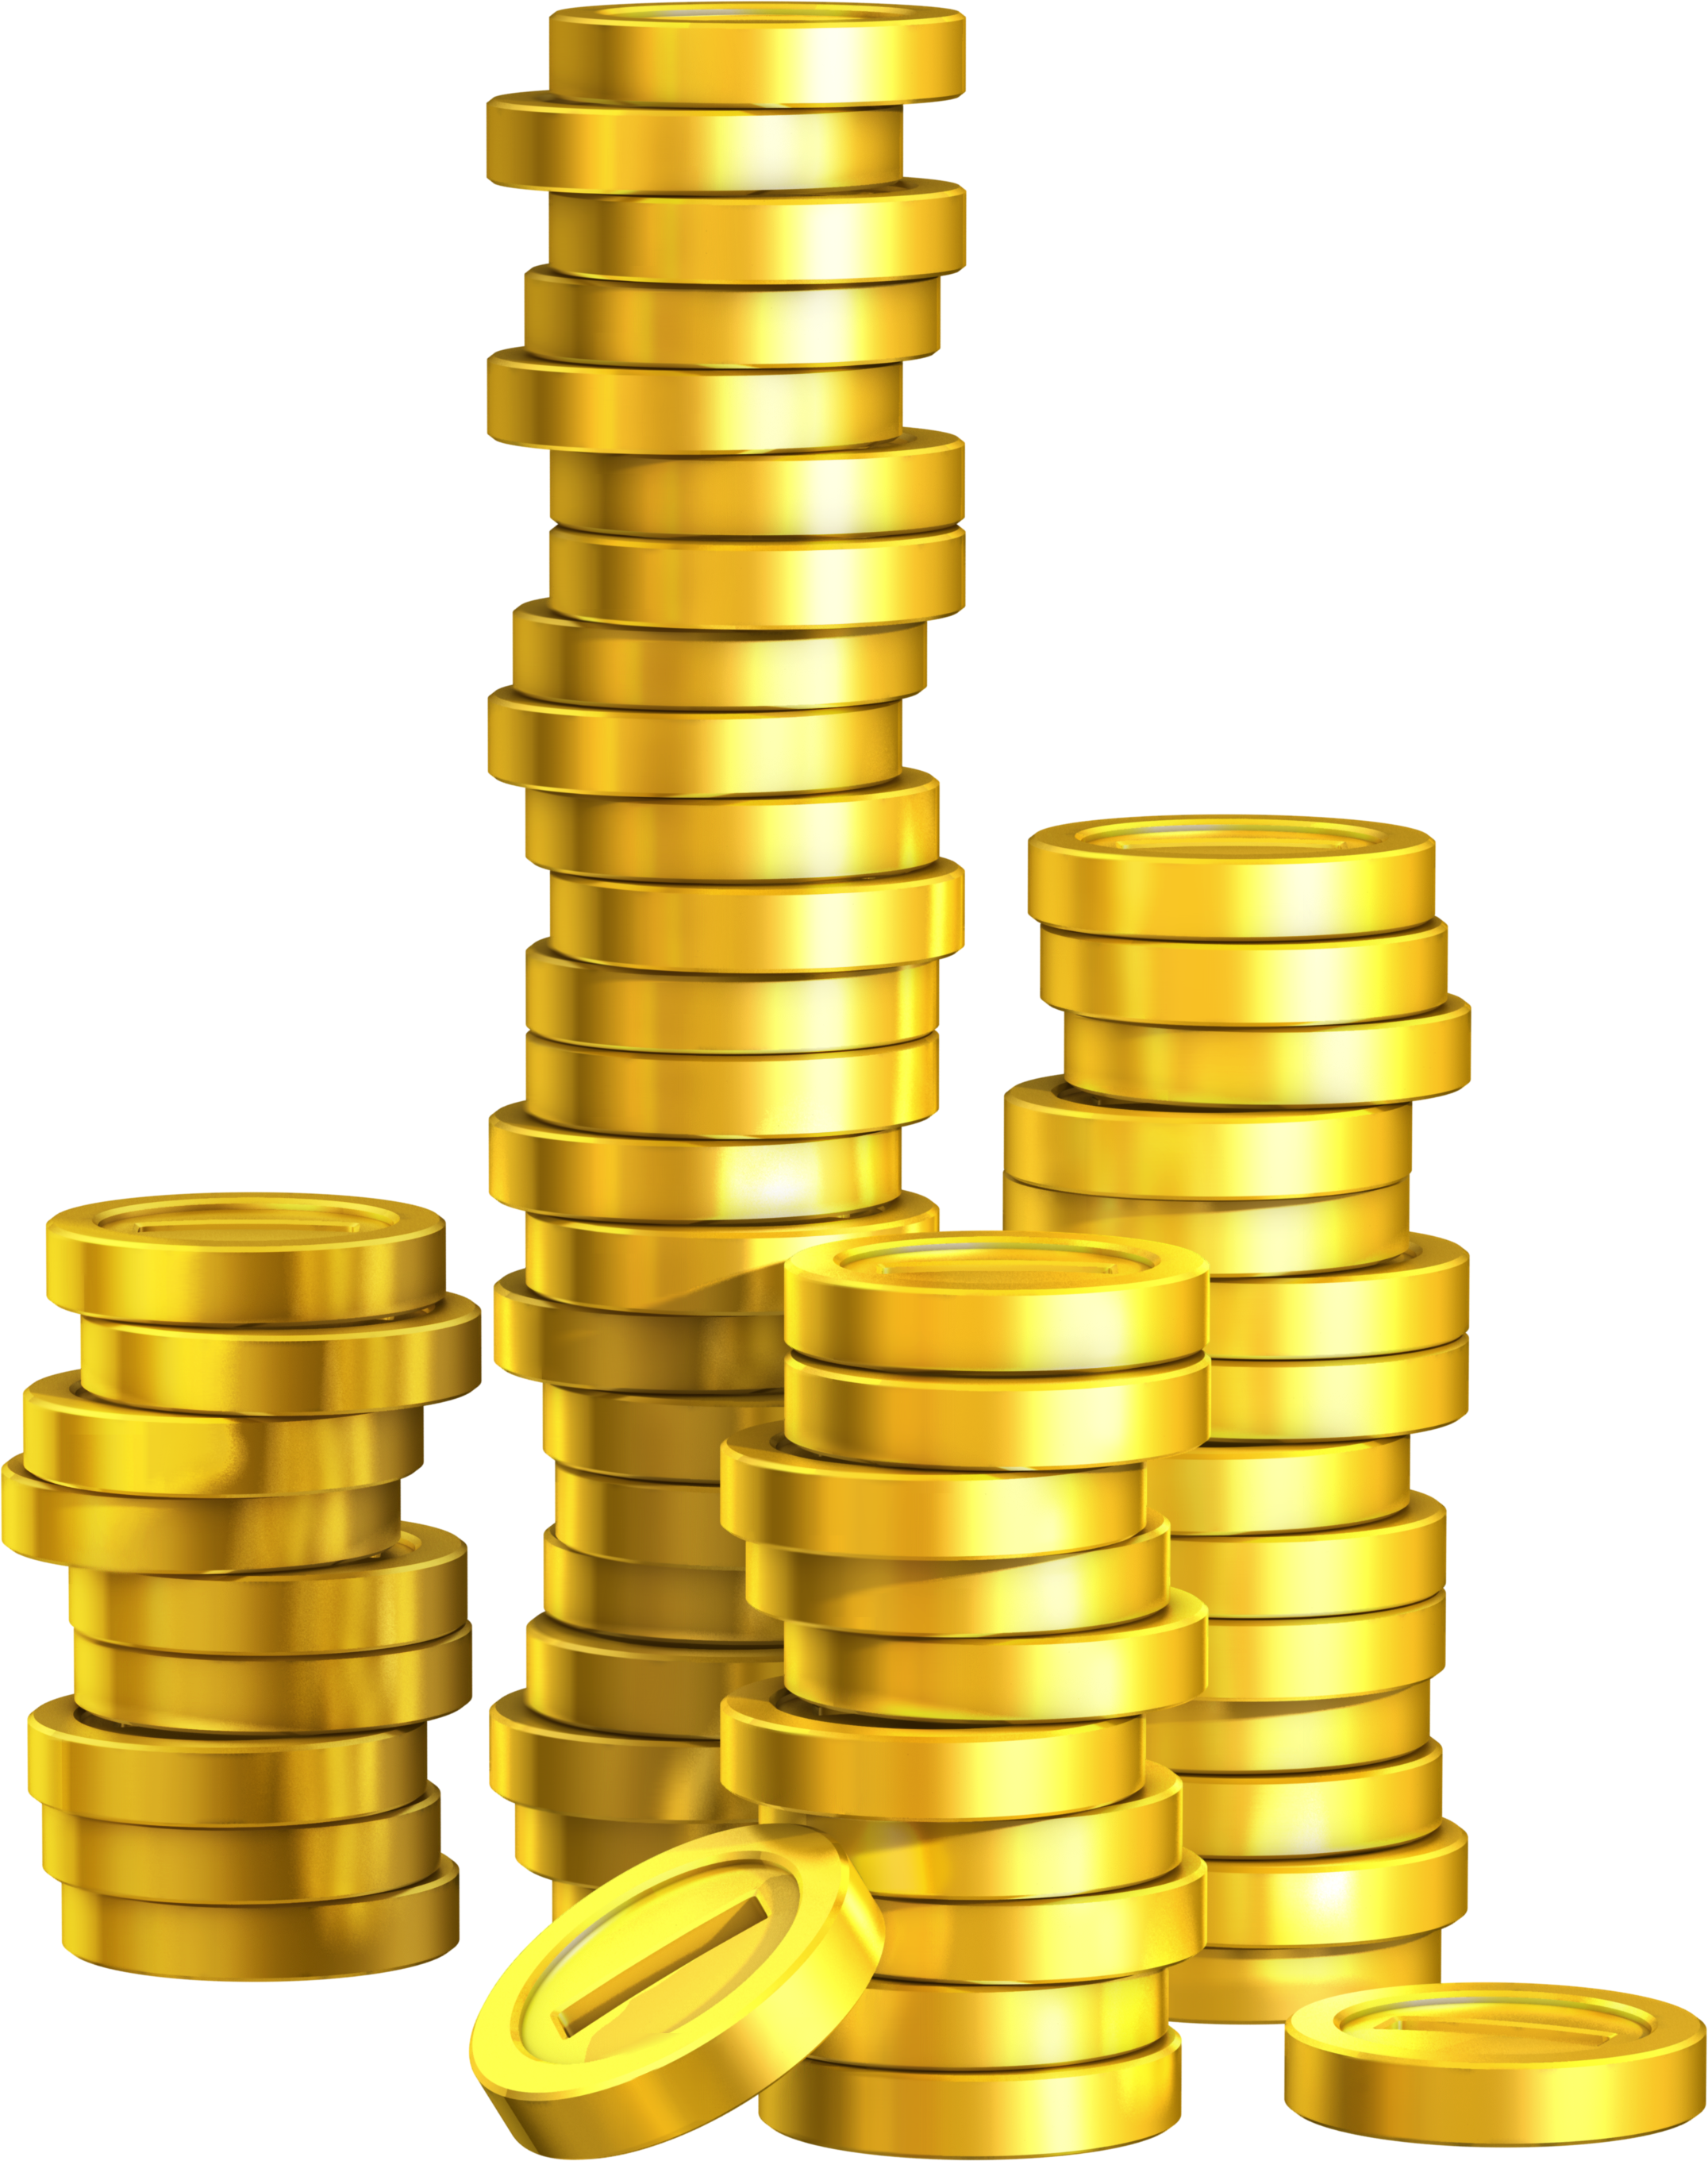 Png image purepng free. Coins clipart gold coin